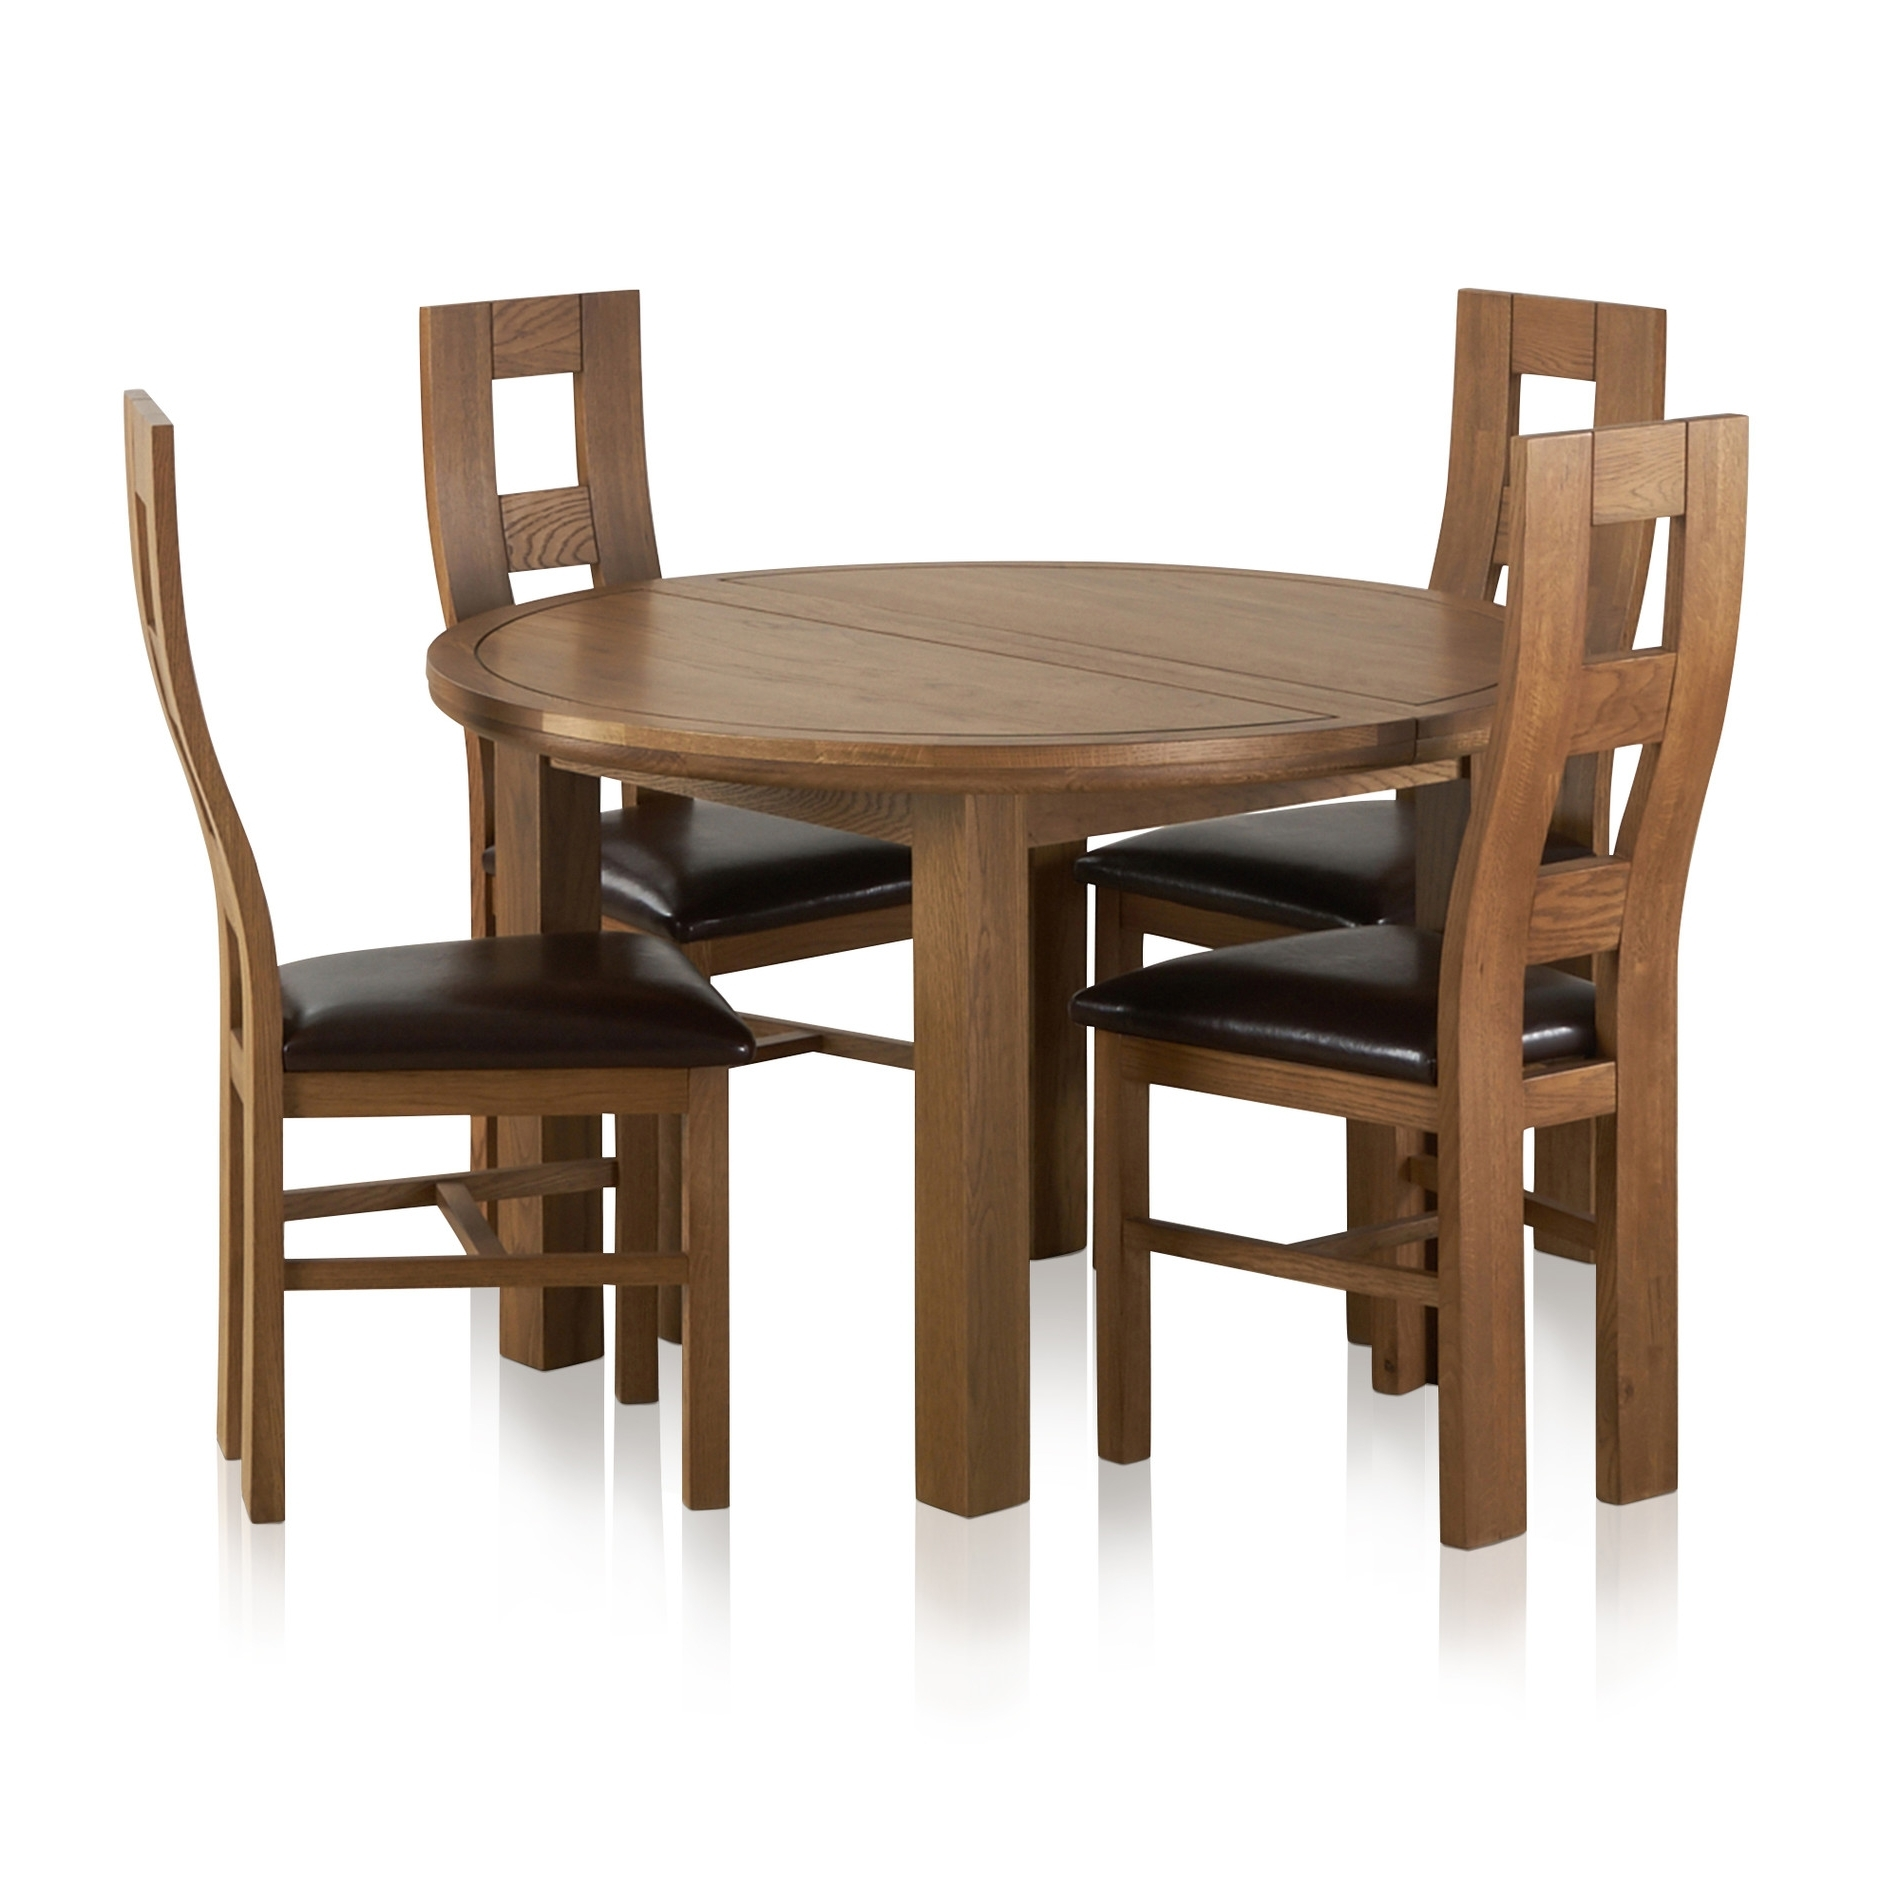 Popular Round Extending Oak Dining Tables And Chairs Intended For Knightsbridge Round Extending Dining Table + 4 Leather Chairs (View 12 of 25)